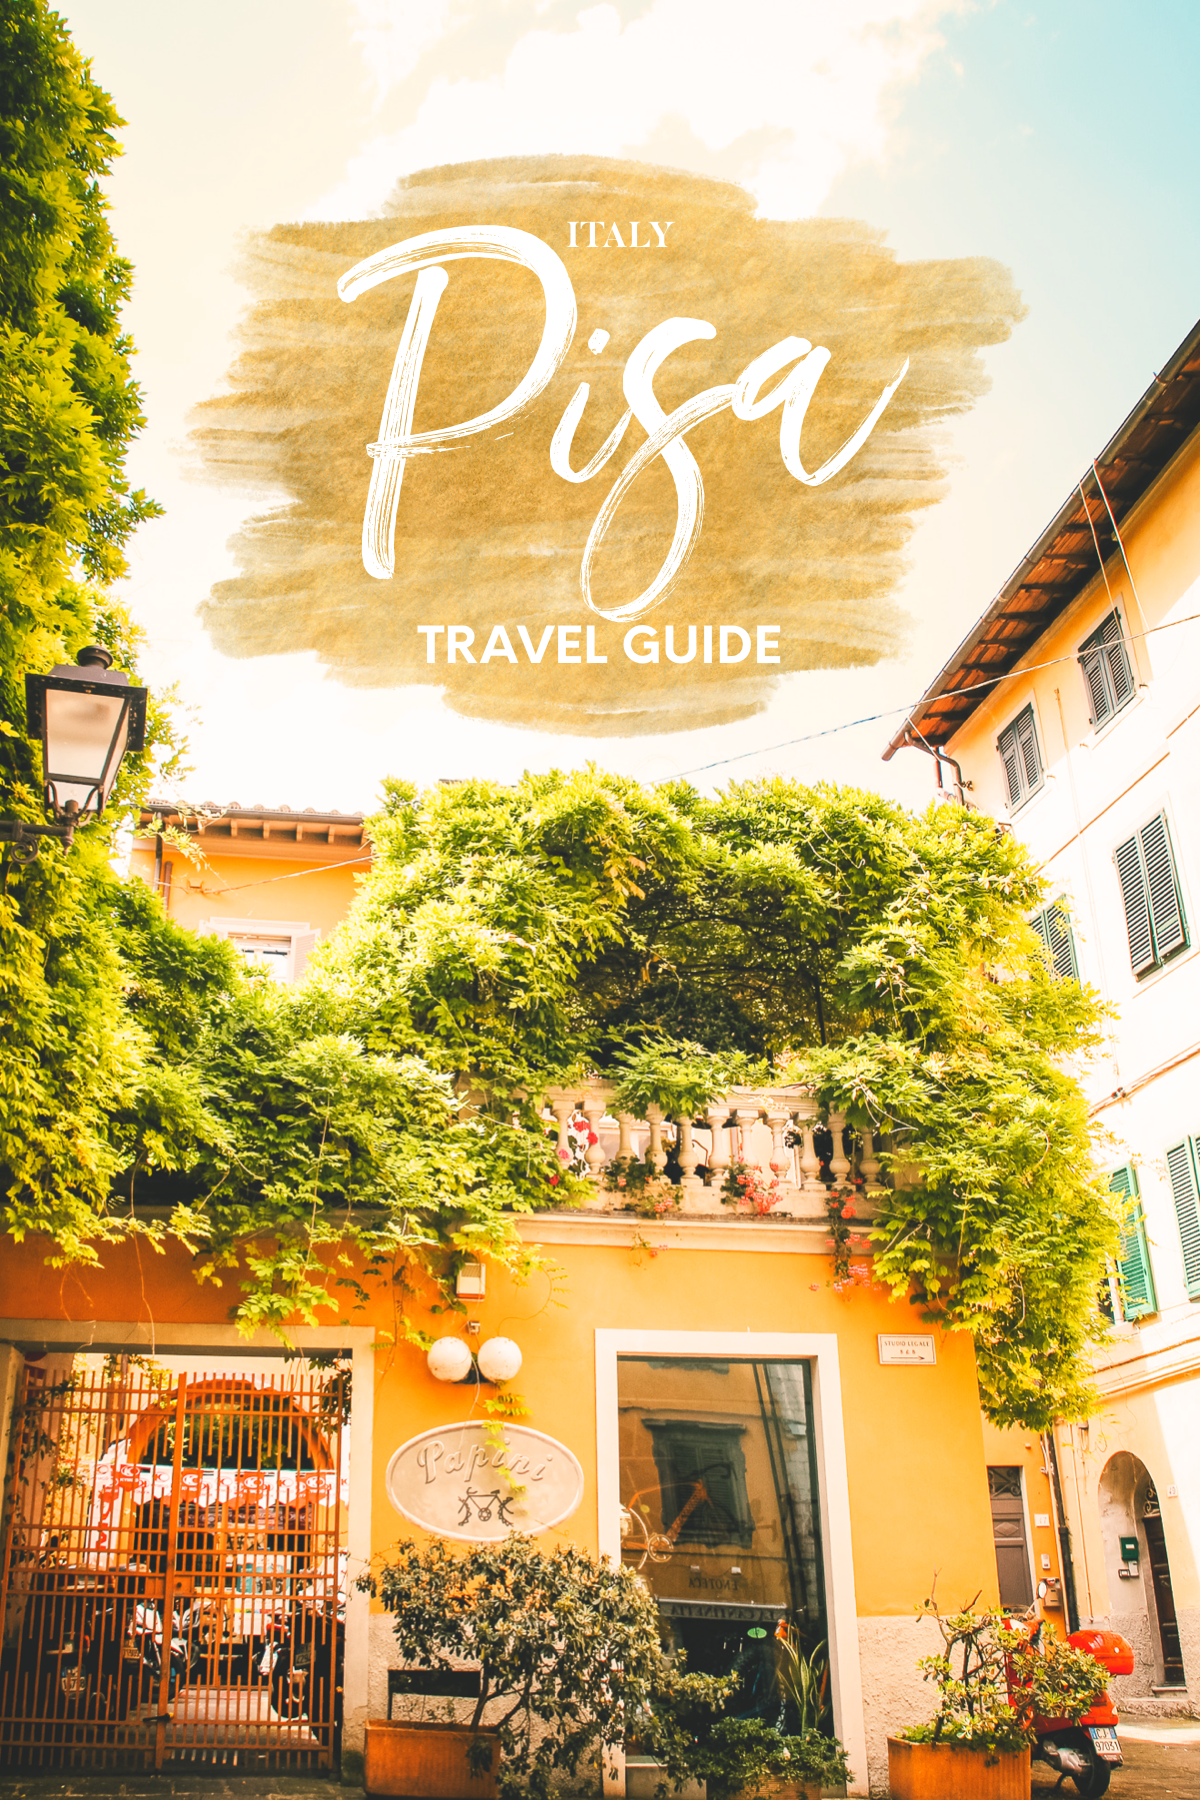 Travel Guide to Pisa, Italy